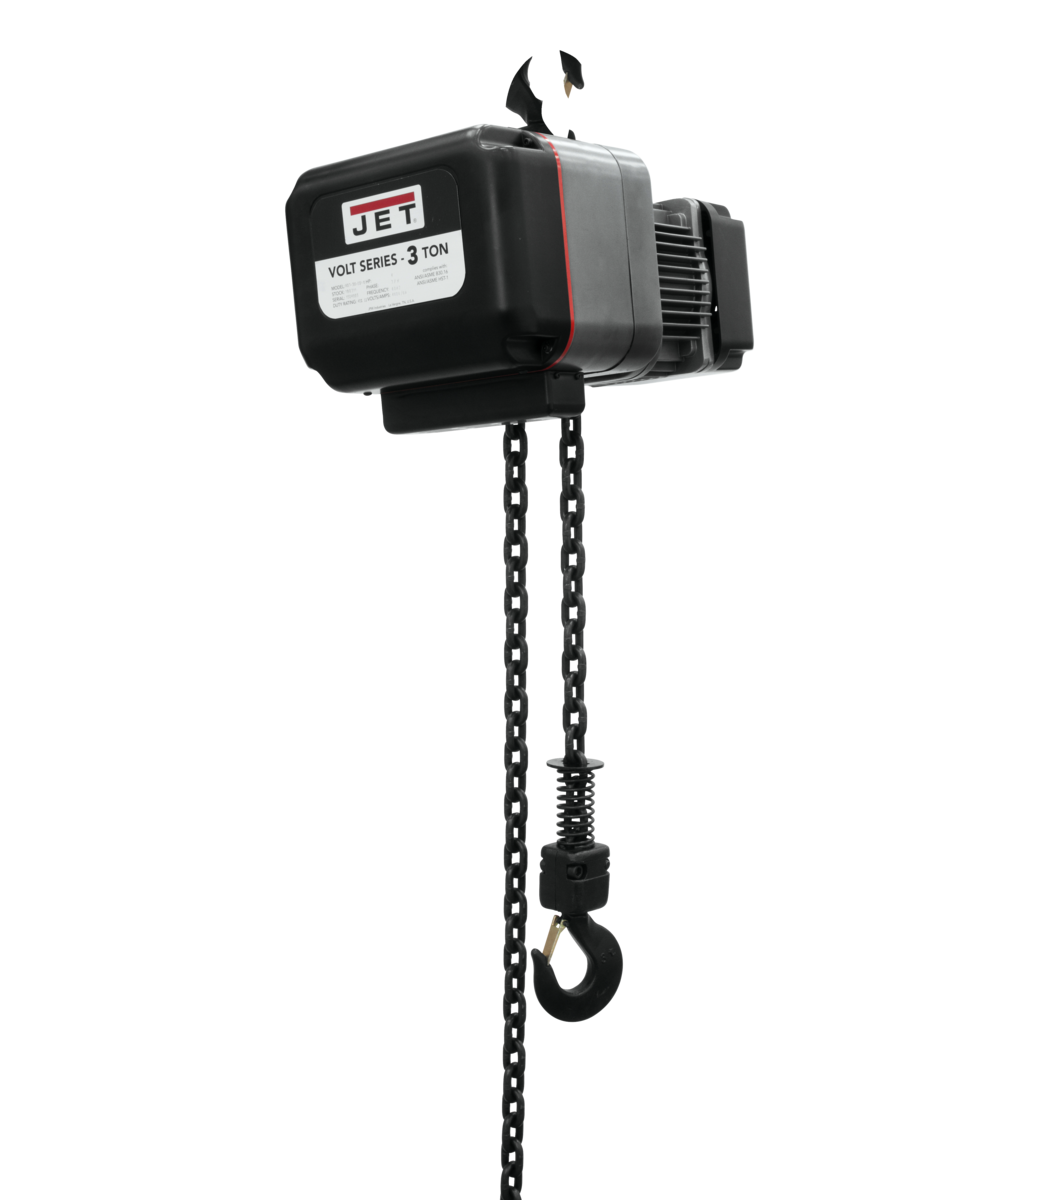 VOLT 3T VARIABLE-SPEED ELECTRIC HOIST 3PH 460V 10' LIFT